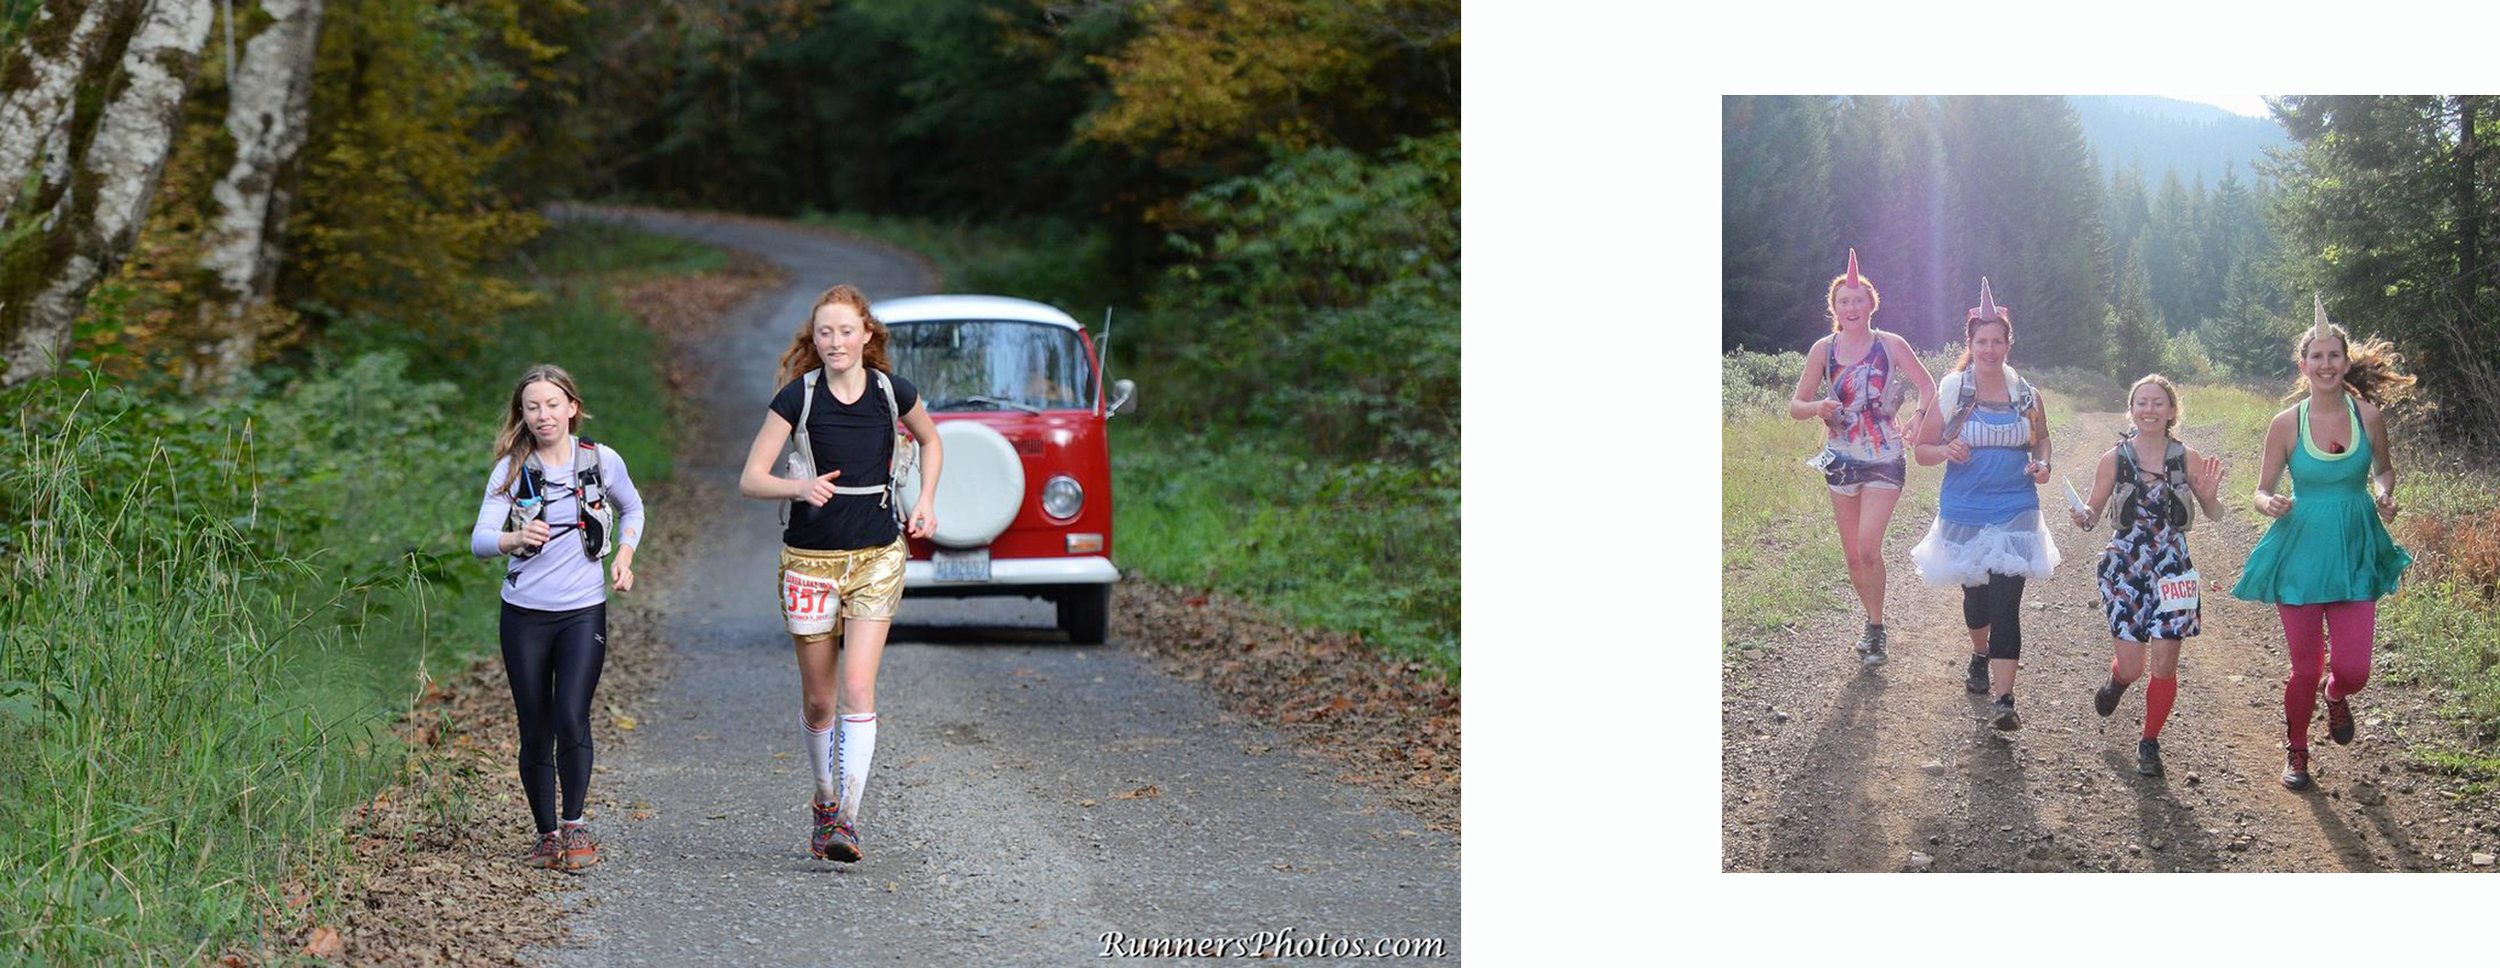 Left: Alicia's first 100km run at the Baker Lake Ultra (about 4 years ago), with partner in crime Tara Berry. Right: Alicia dressed up as a unicorn and ran 100 miles in less than a day at Cascade Crest 100 in 2015. She convinced her friends to come out dressed like unicorns, too. (Photo by Julien Lamoureux )